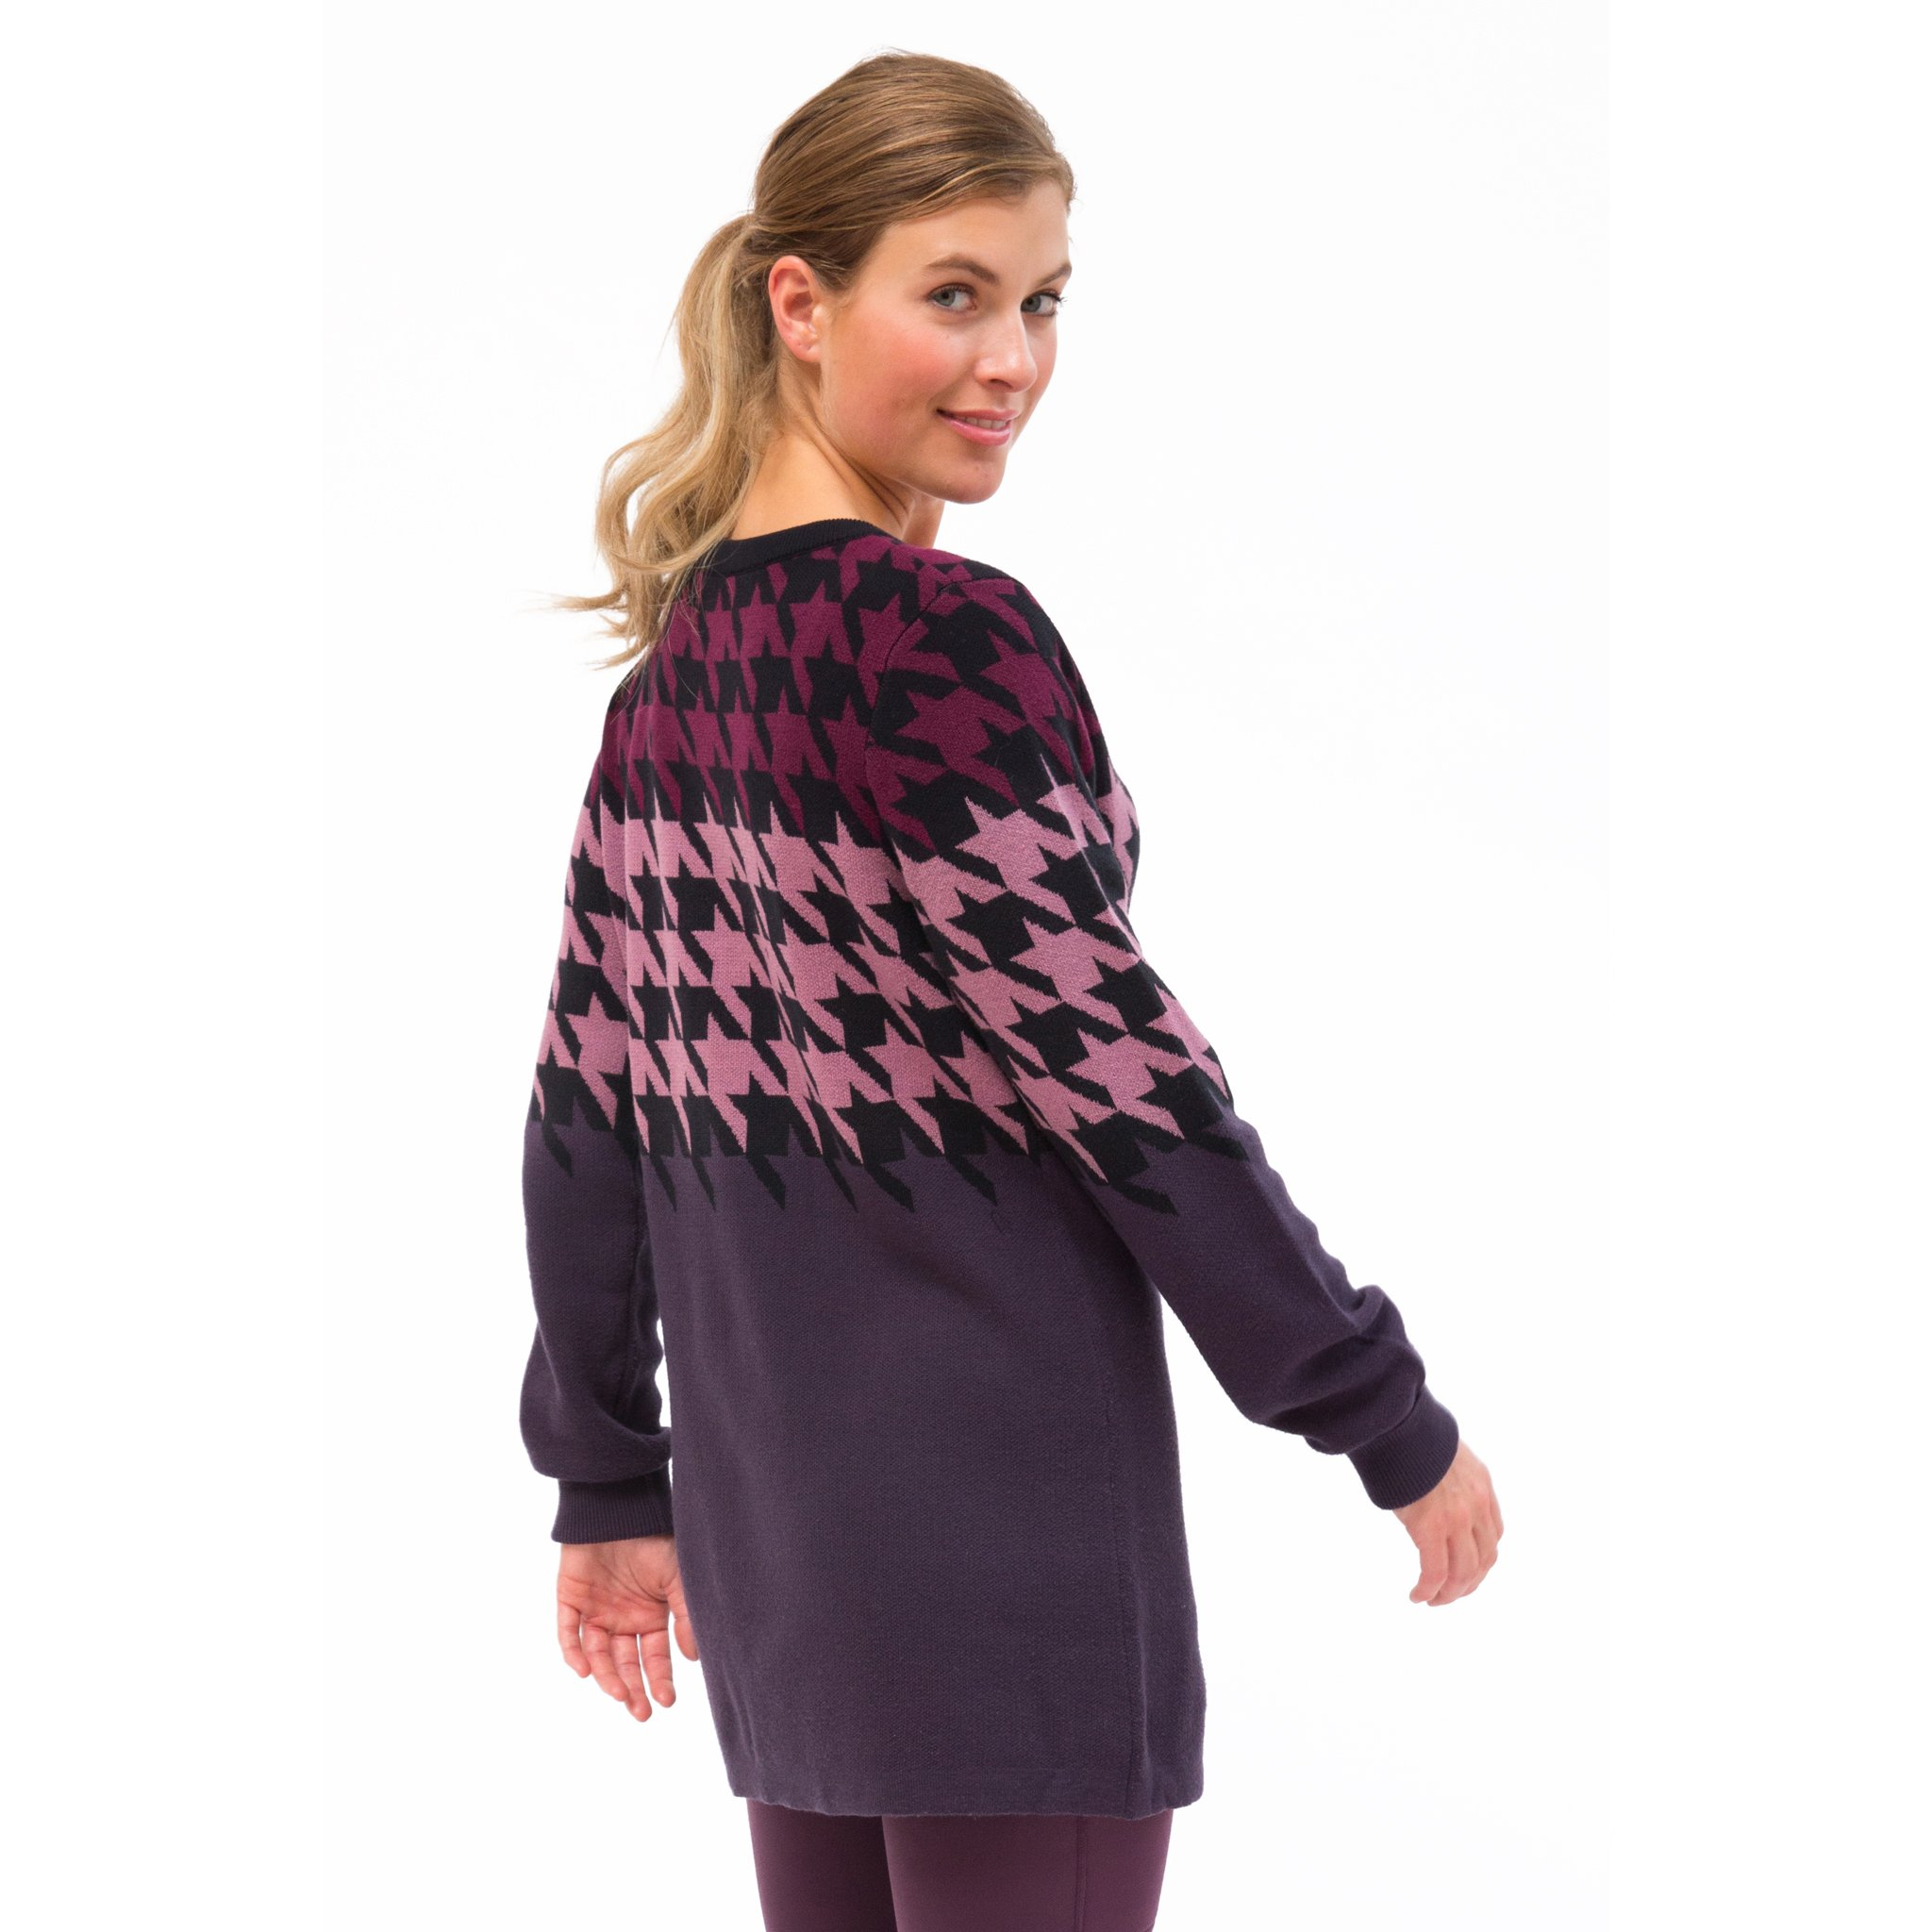 Kerrits-Equestrian-Women-039-s-Houndstooth-Tunic-Sweater-with-Scoop-Neck miniature 6